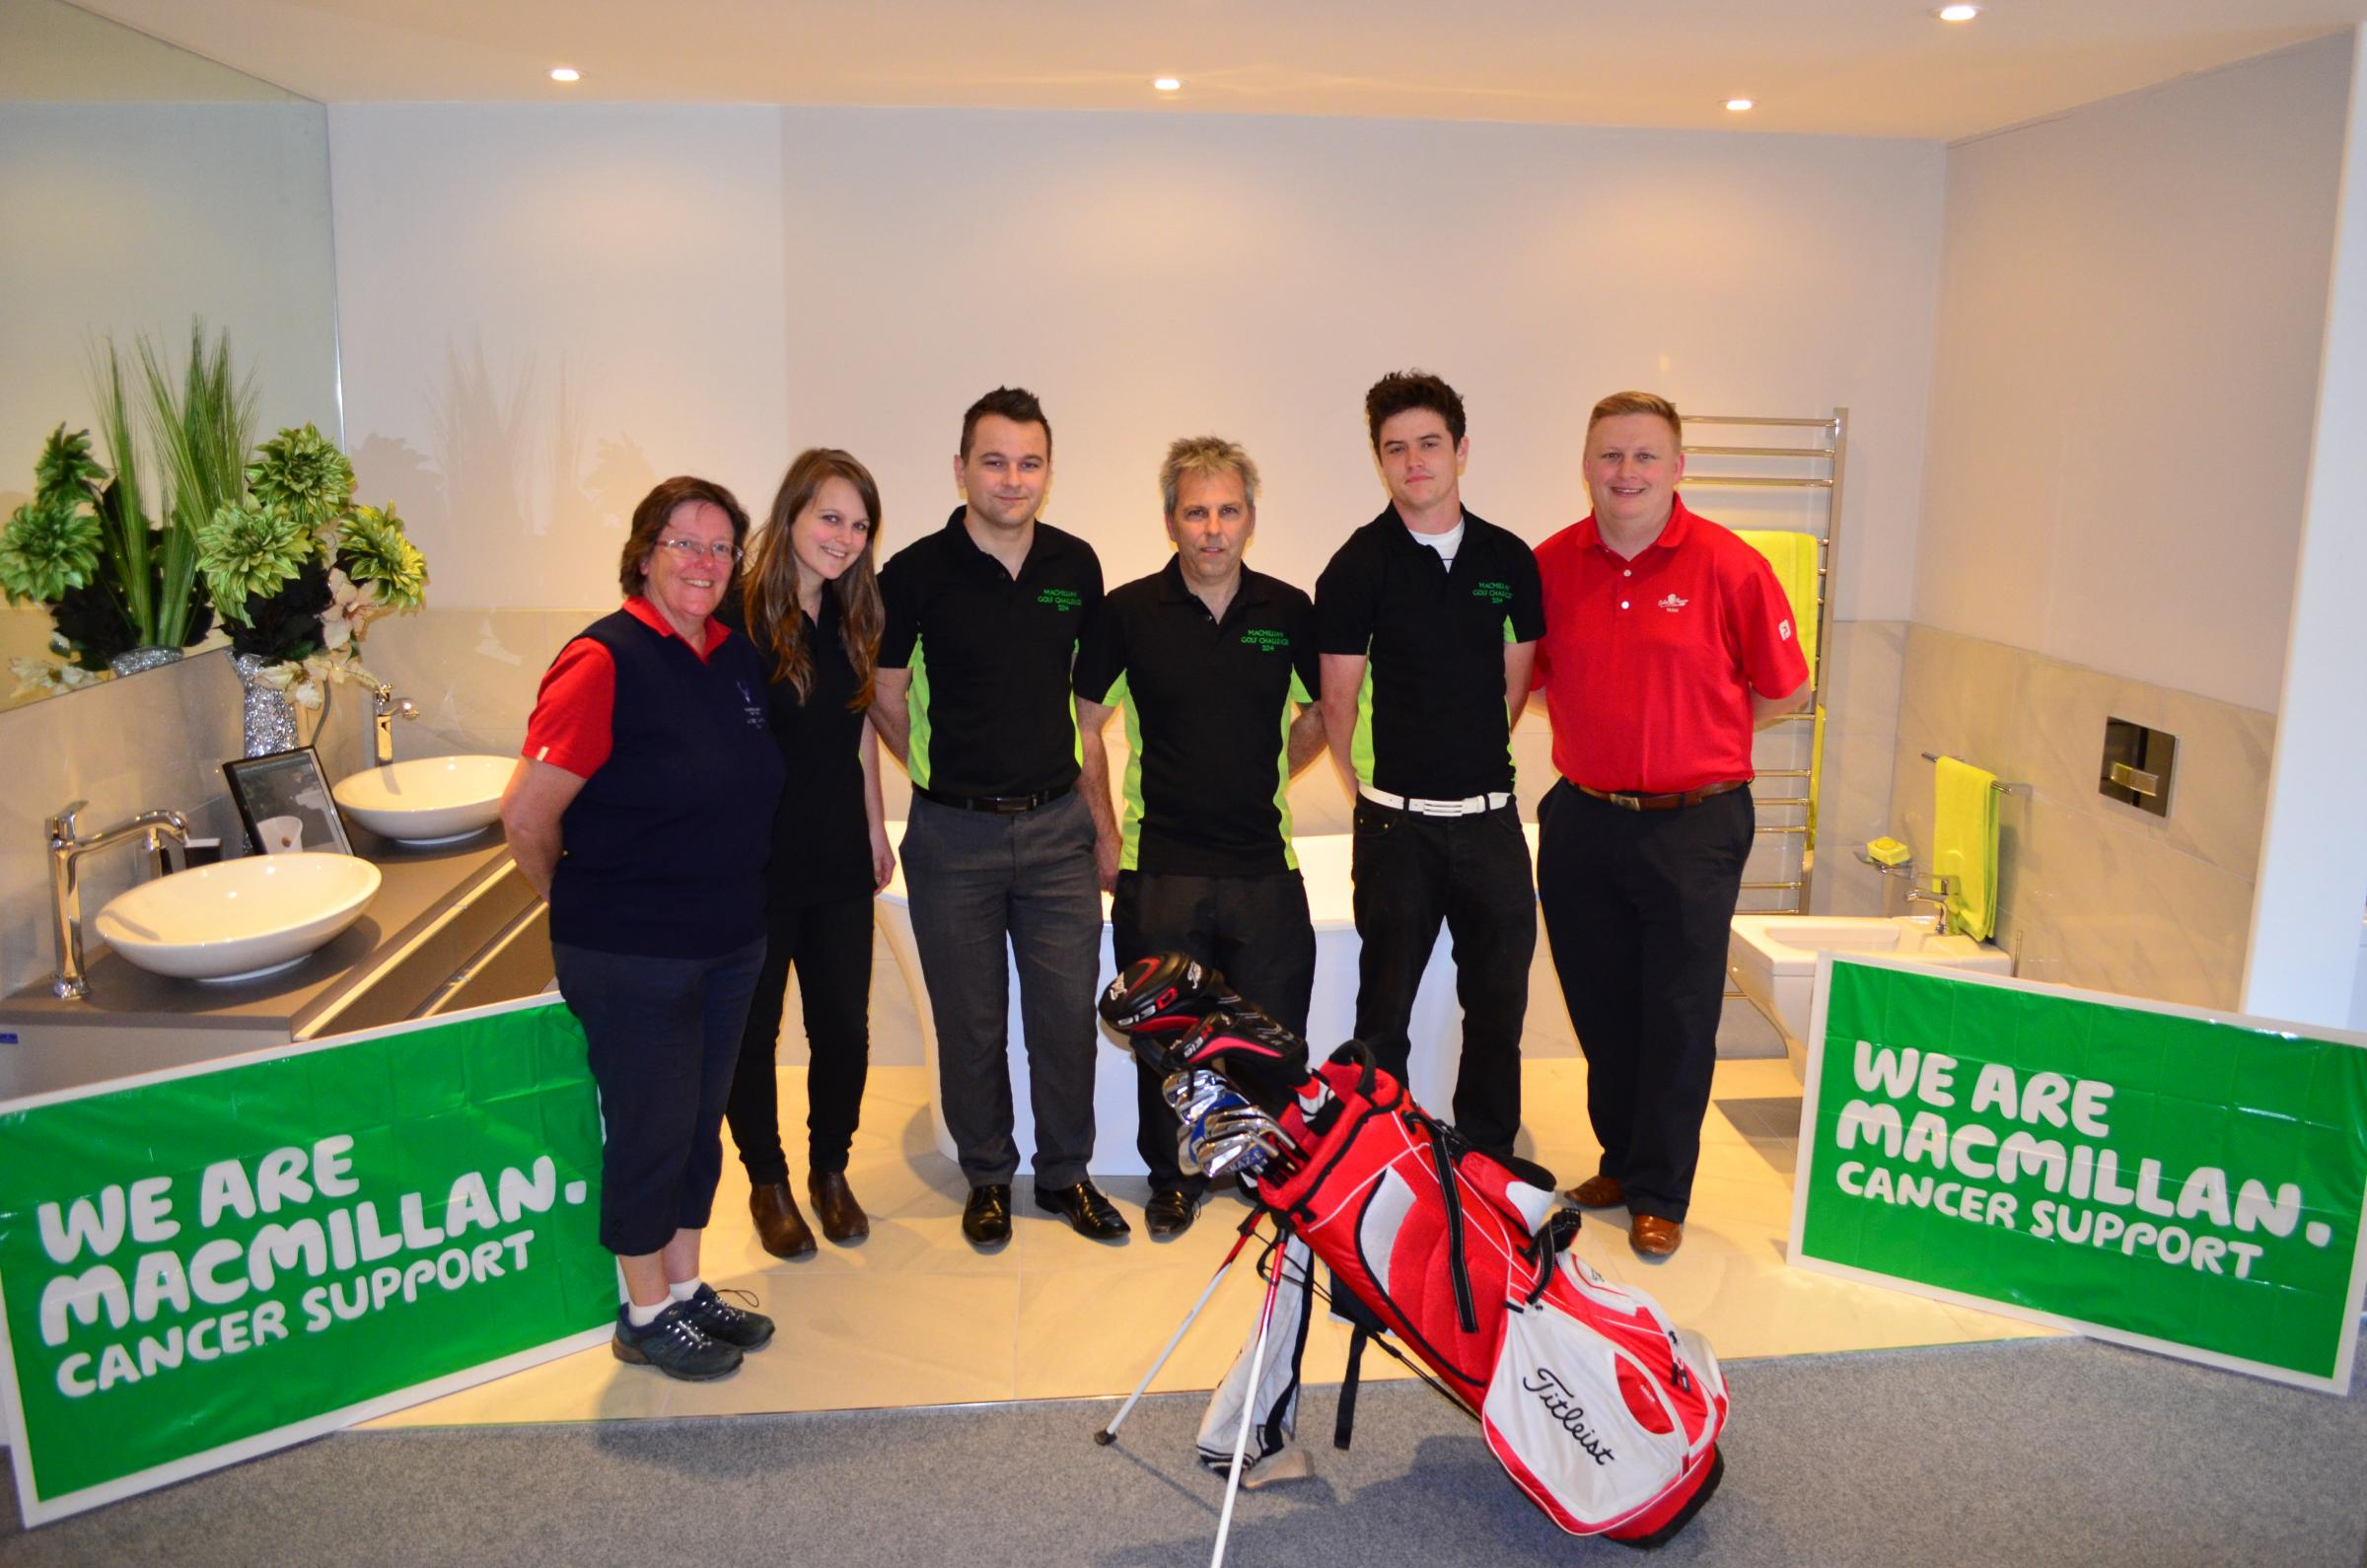 Judith Sperring, Enmore's Lady Captain, Shannon Neal, Daniel Neal, Paul Neal, Jacob Eyres and Oake Manor's Pro, James Smallacombe. Photo: submitted.